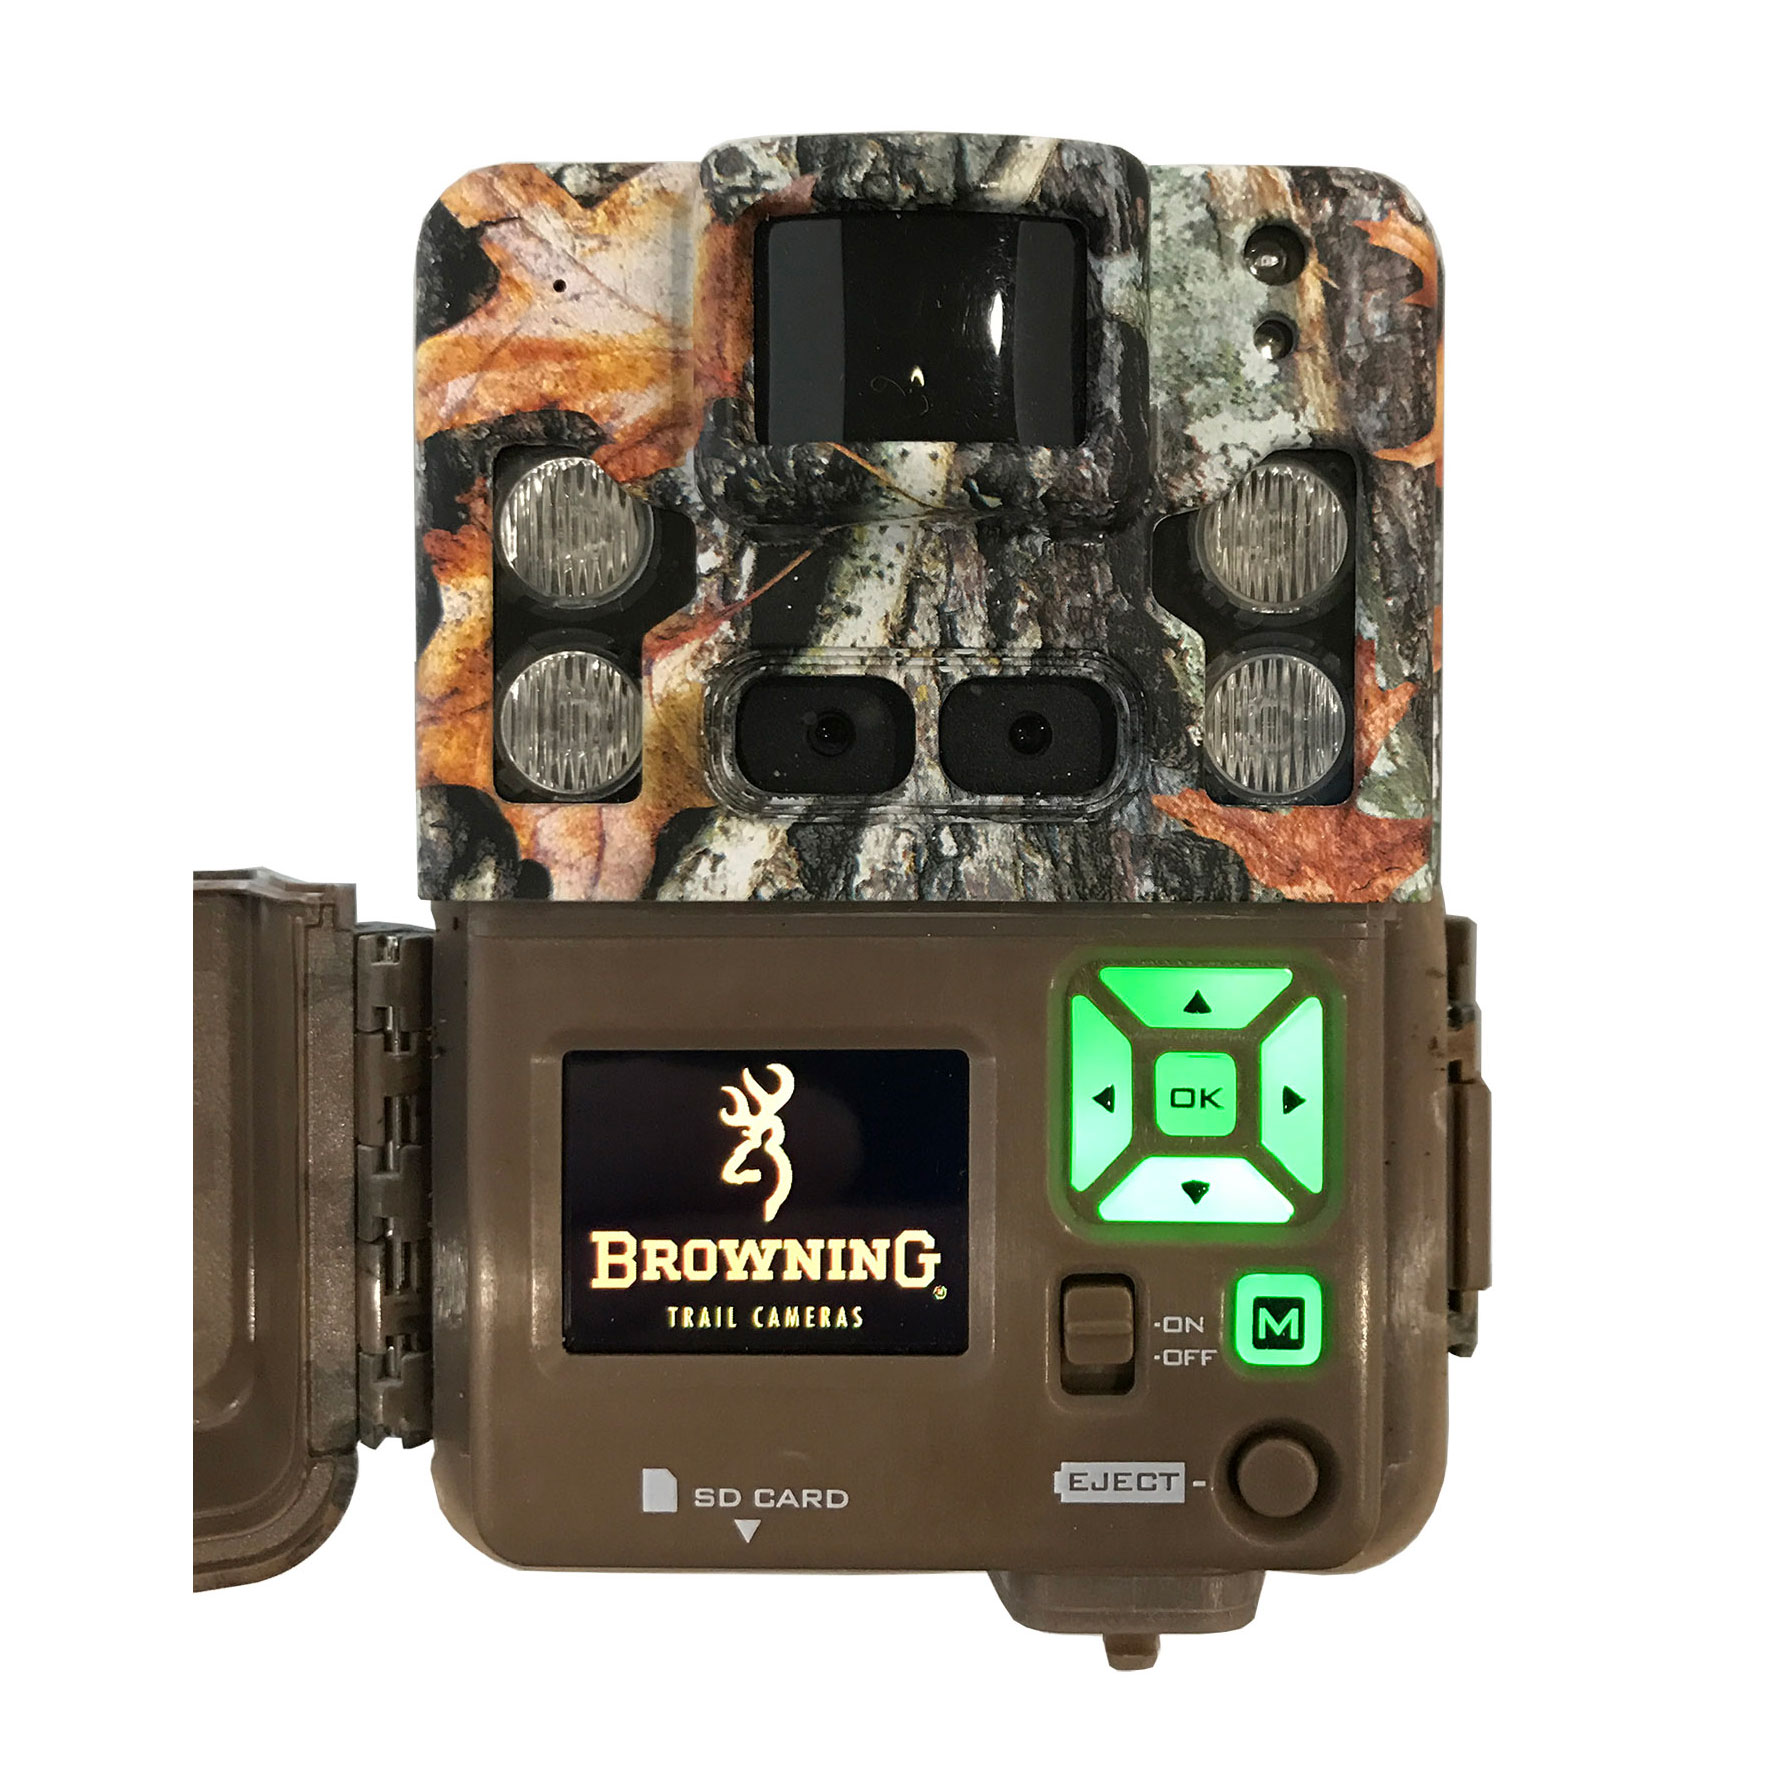 TRAIL CAMERA DARK OPS PRO XD DUAL LENS